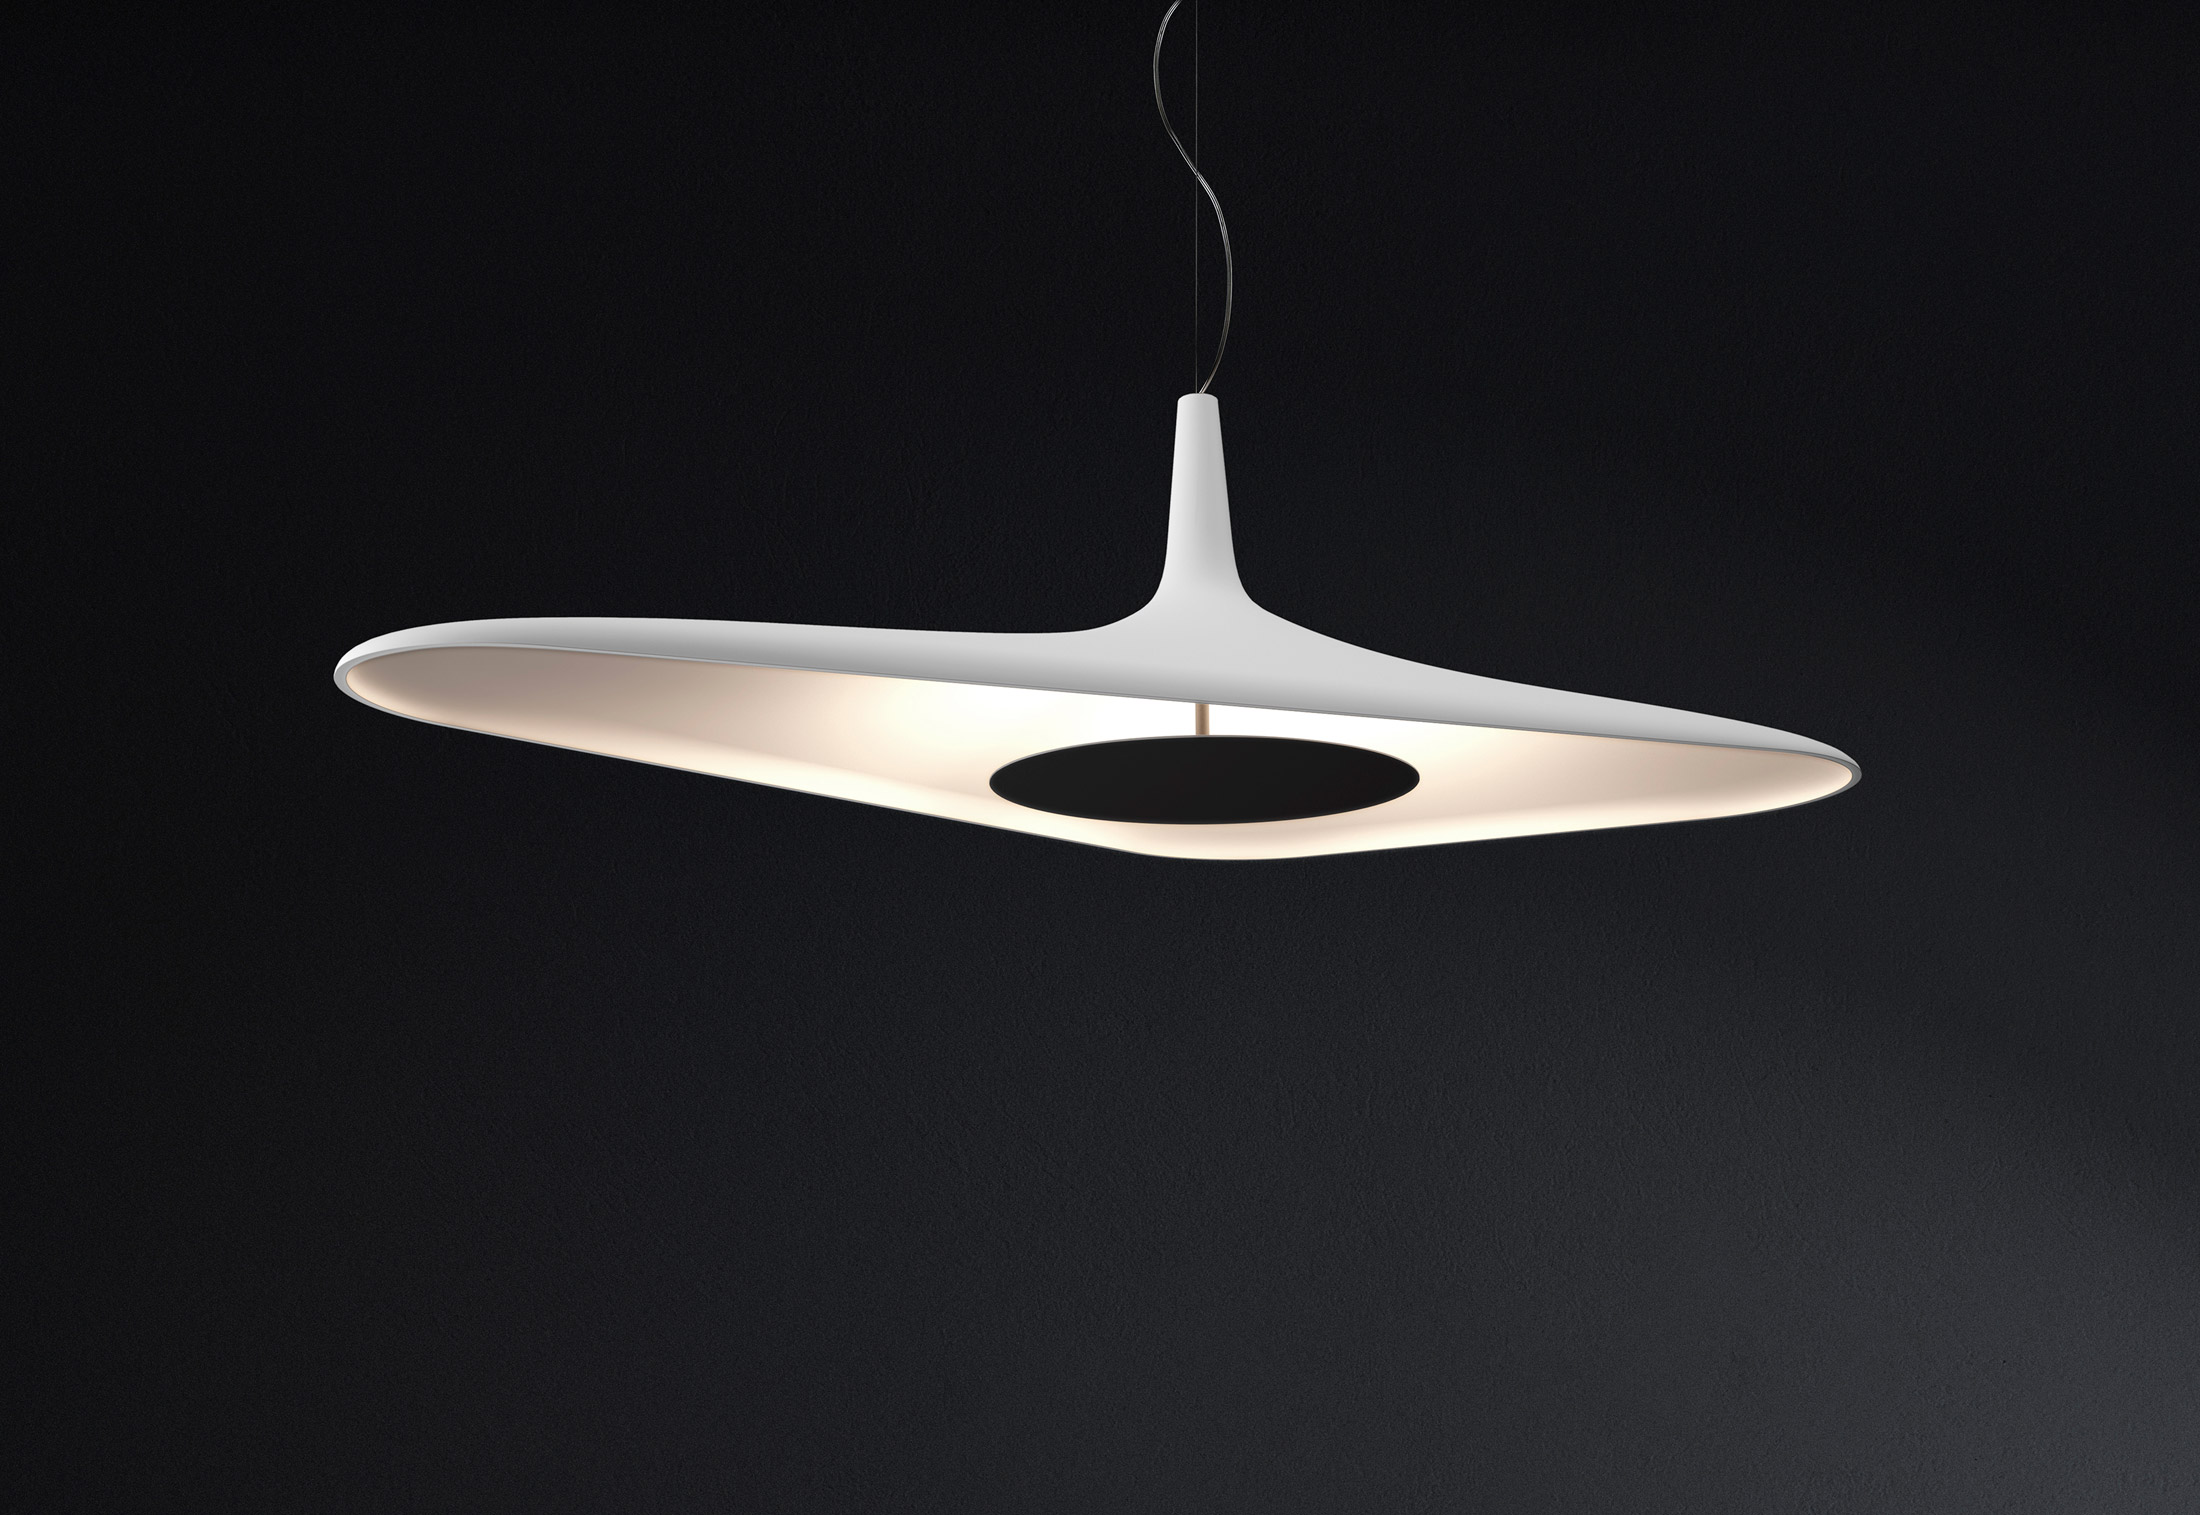 Soleil Noir Lamp by Odile Decq for Luceplan